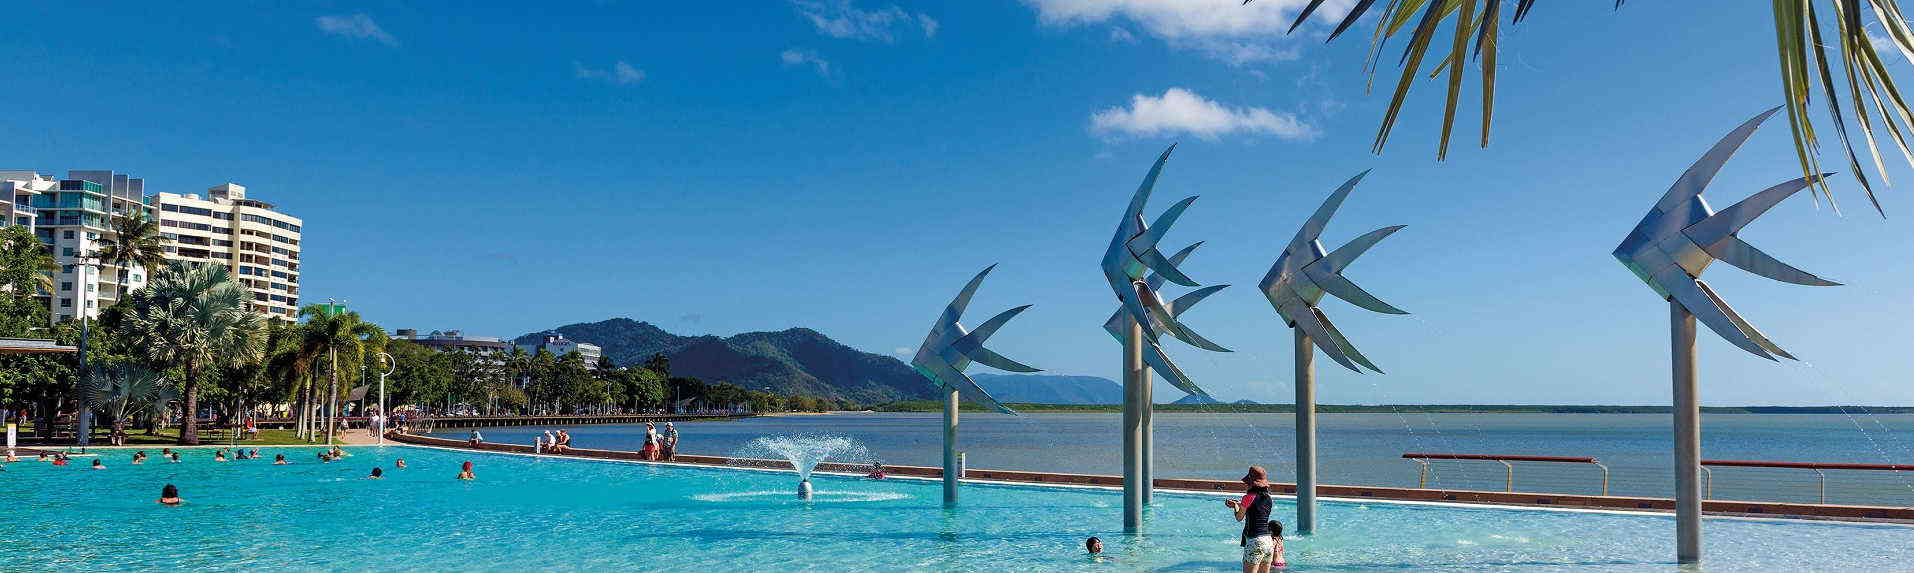 Cairns City Tours